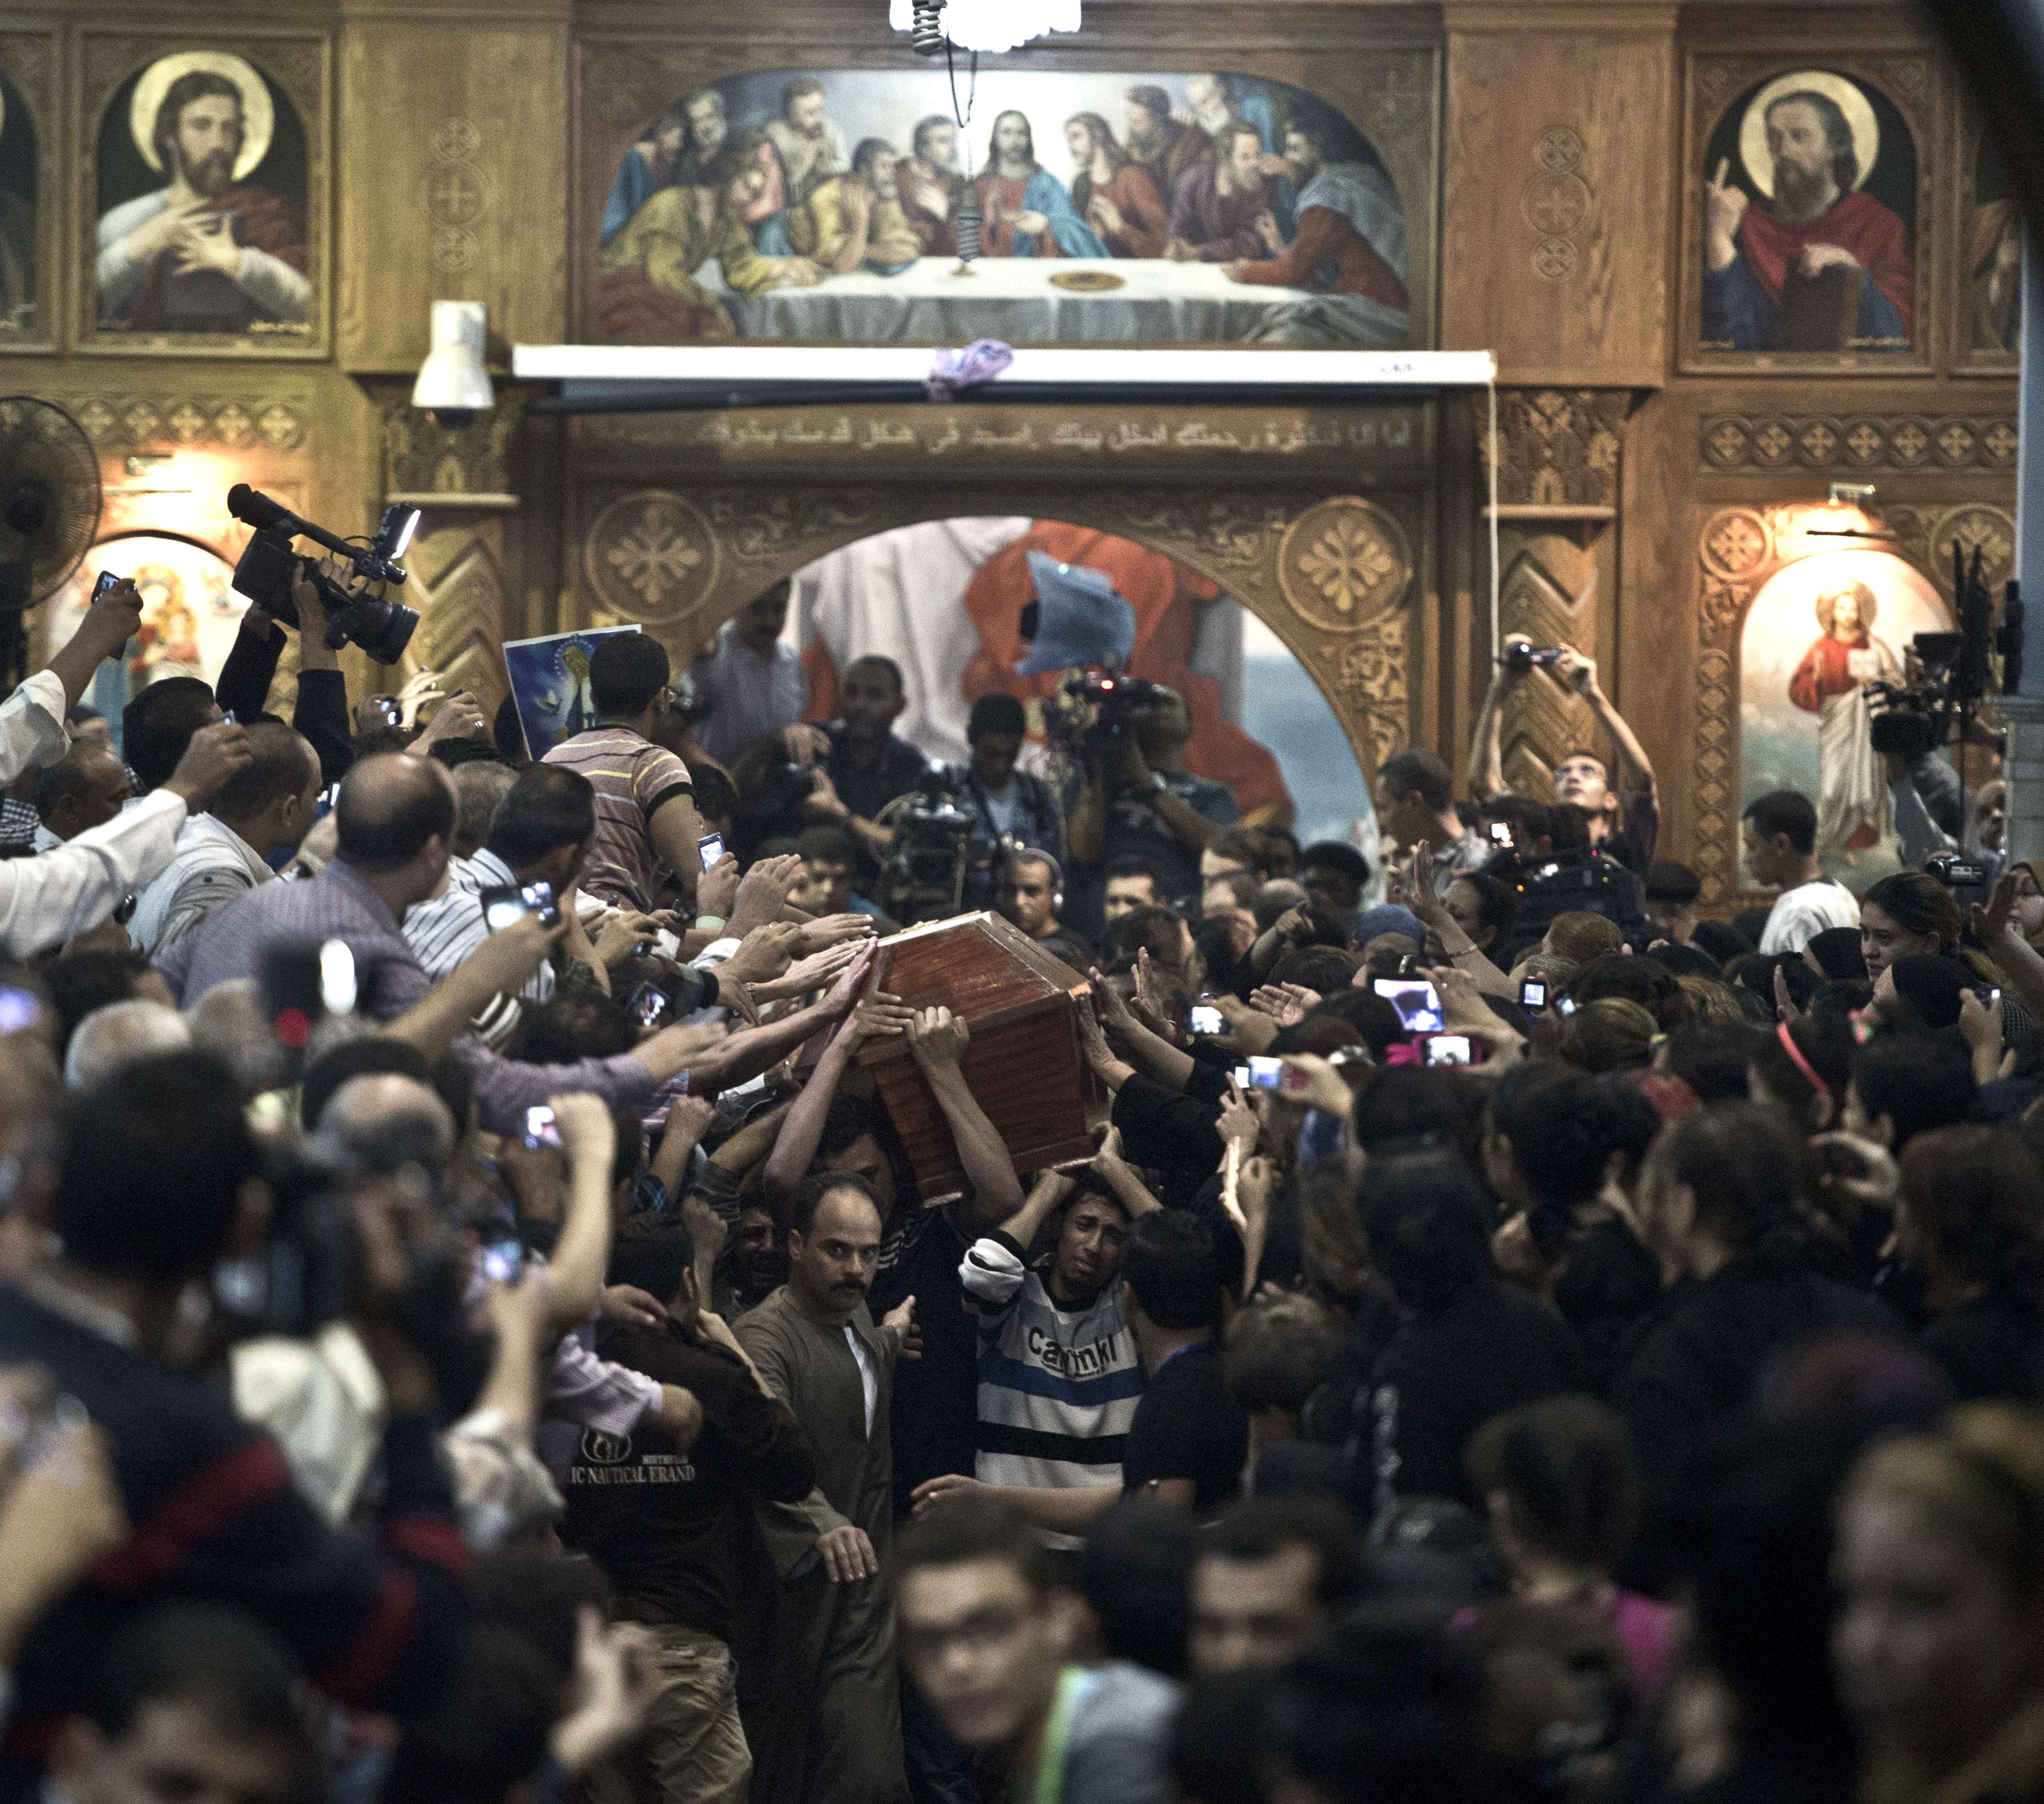 Egyptian Copts carry one of four coffins down the aisle of the Virgin Mary Coptic Christian church in Cairo's working class neighbourhood of Al-Warrak, on October 21, 2013, as thousands attend the funeral of the victims, gunned down as they attended a wedding the previous evening at the same church. (AFP PHOTO / KHALED DESOUKI)